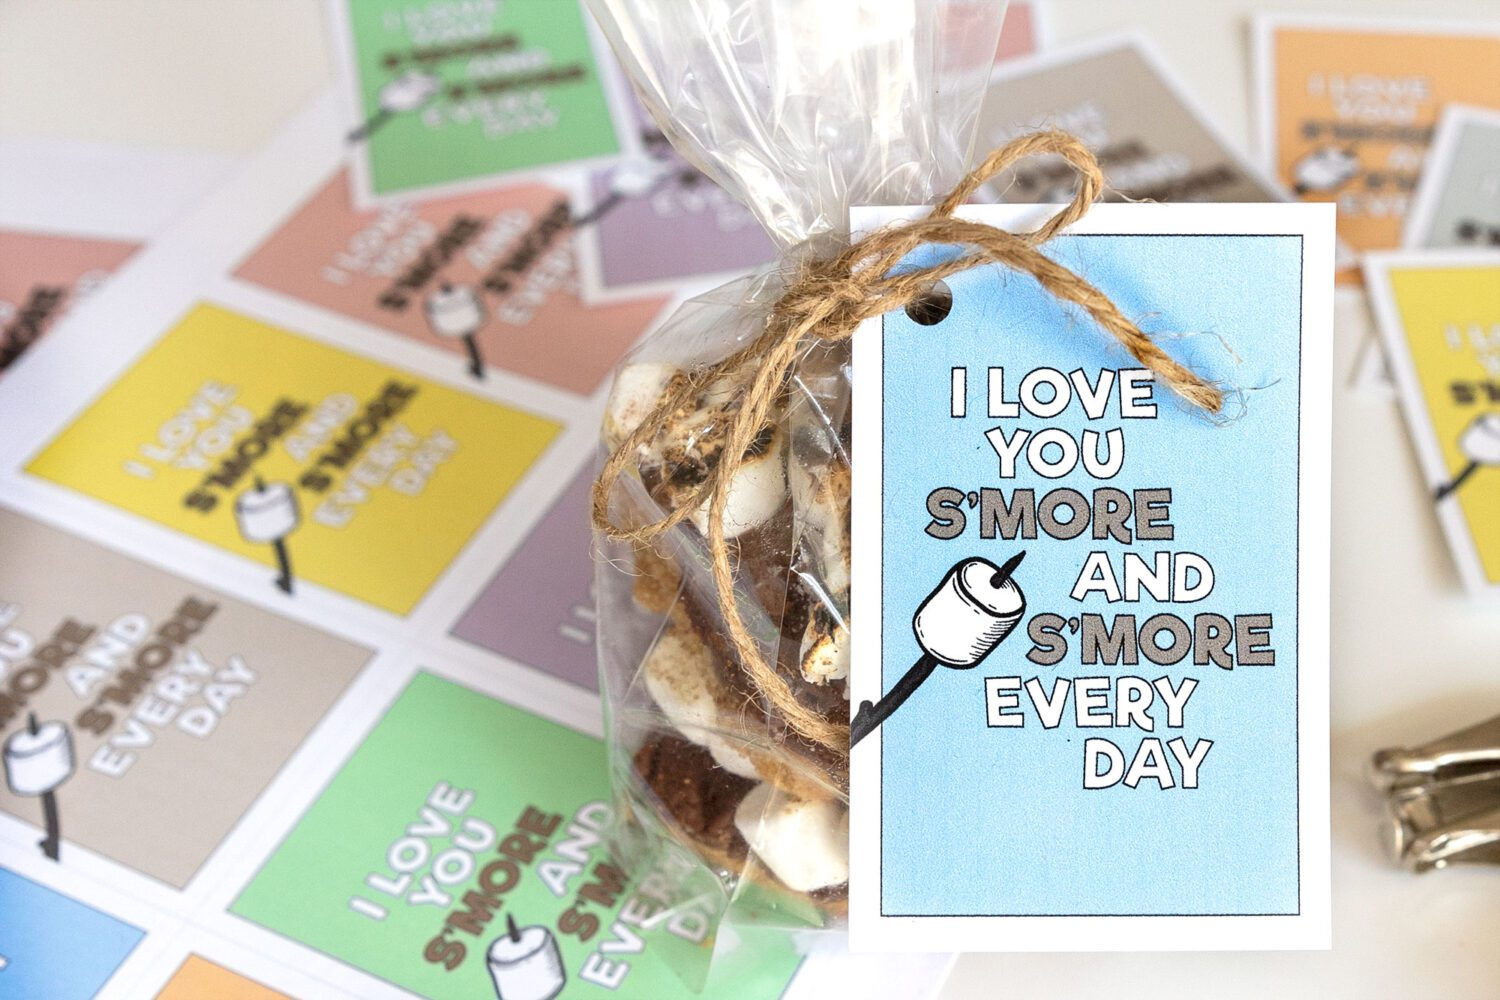 bag of s'mores fudge bars with a note attached